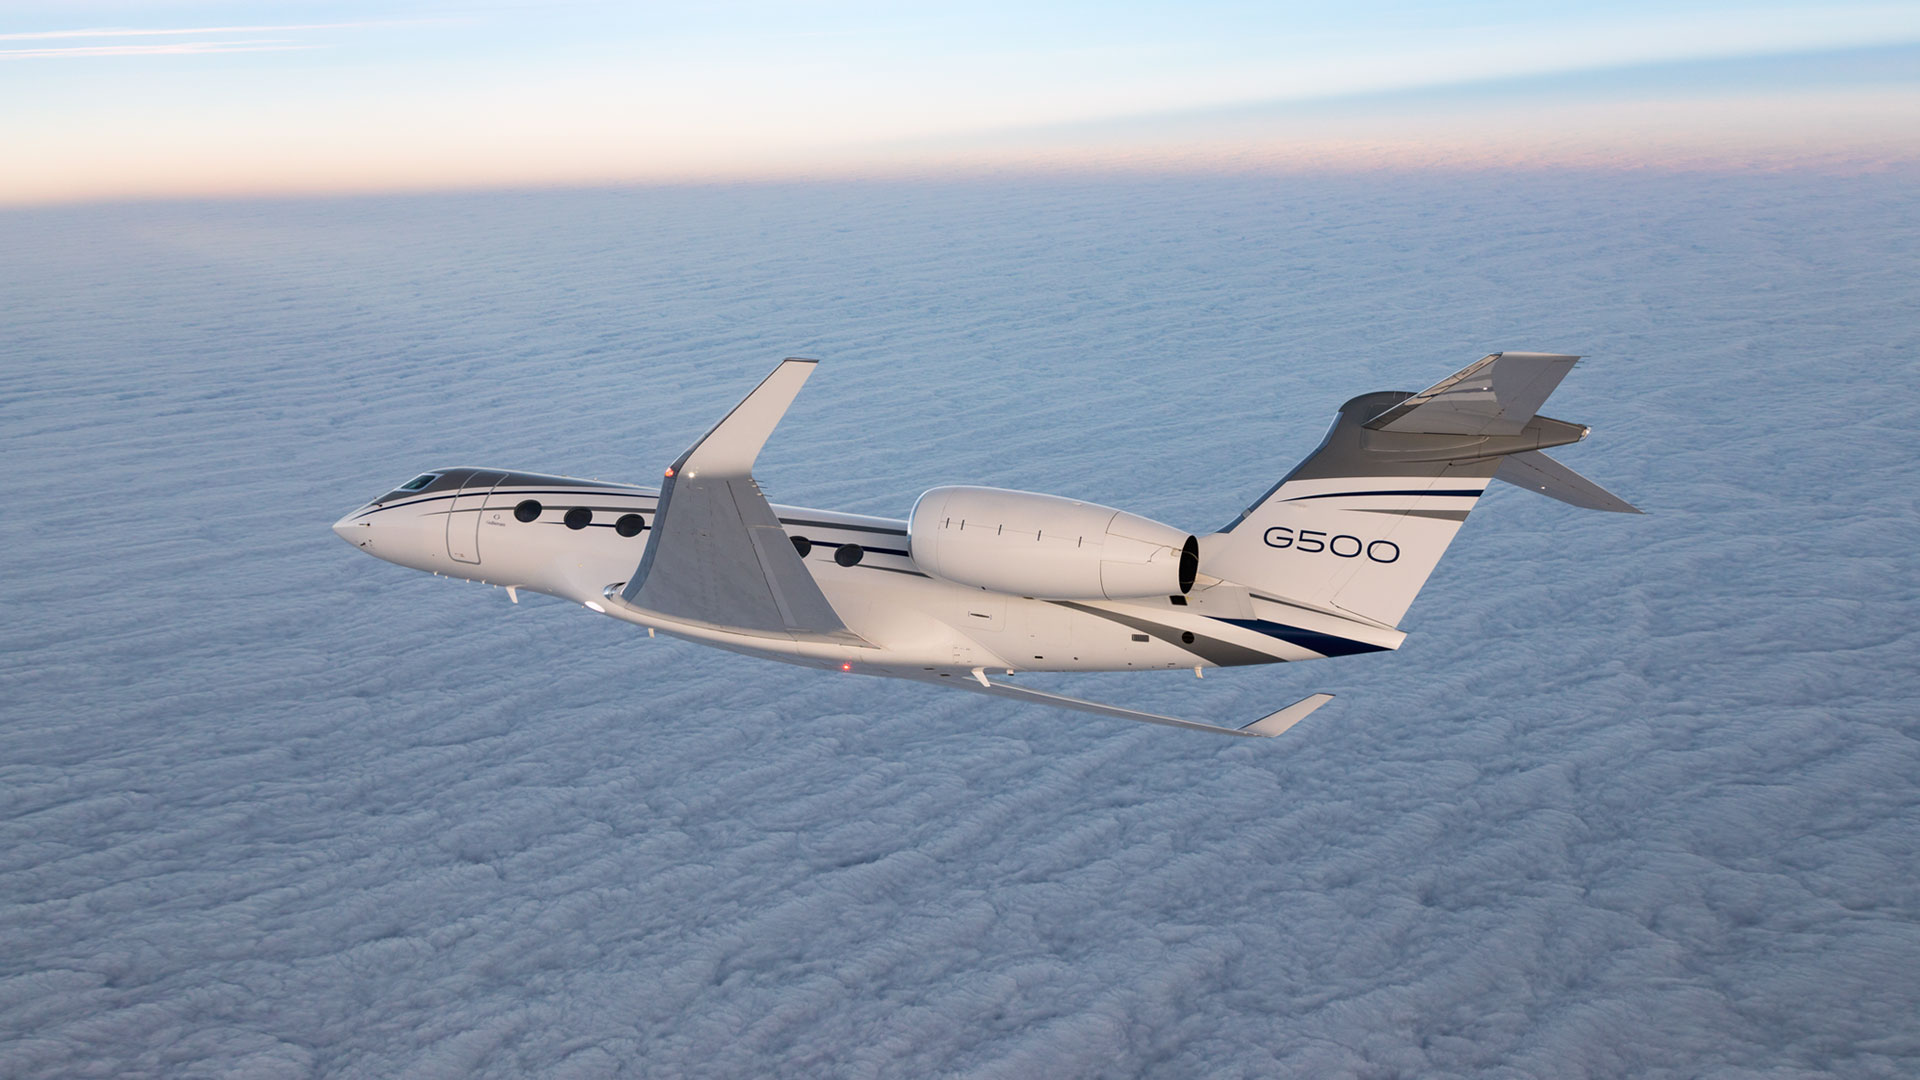 G500 flying over clouded sky.